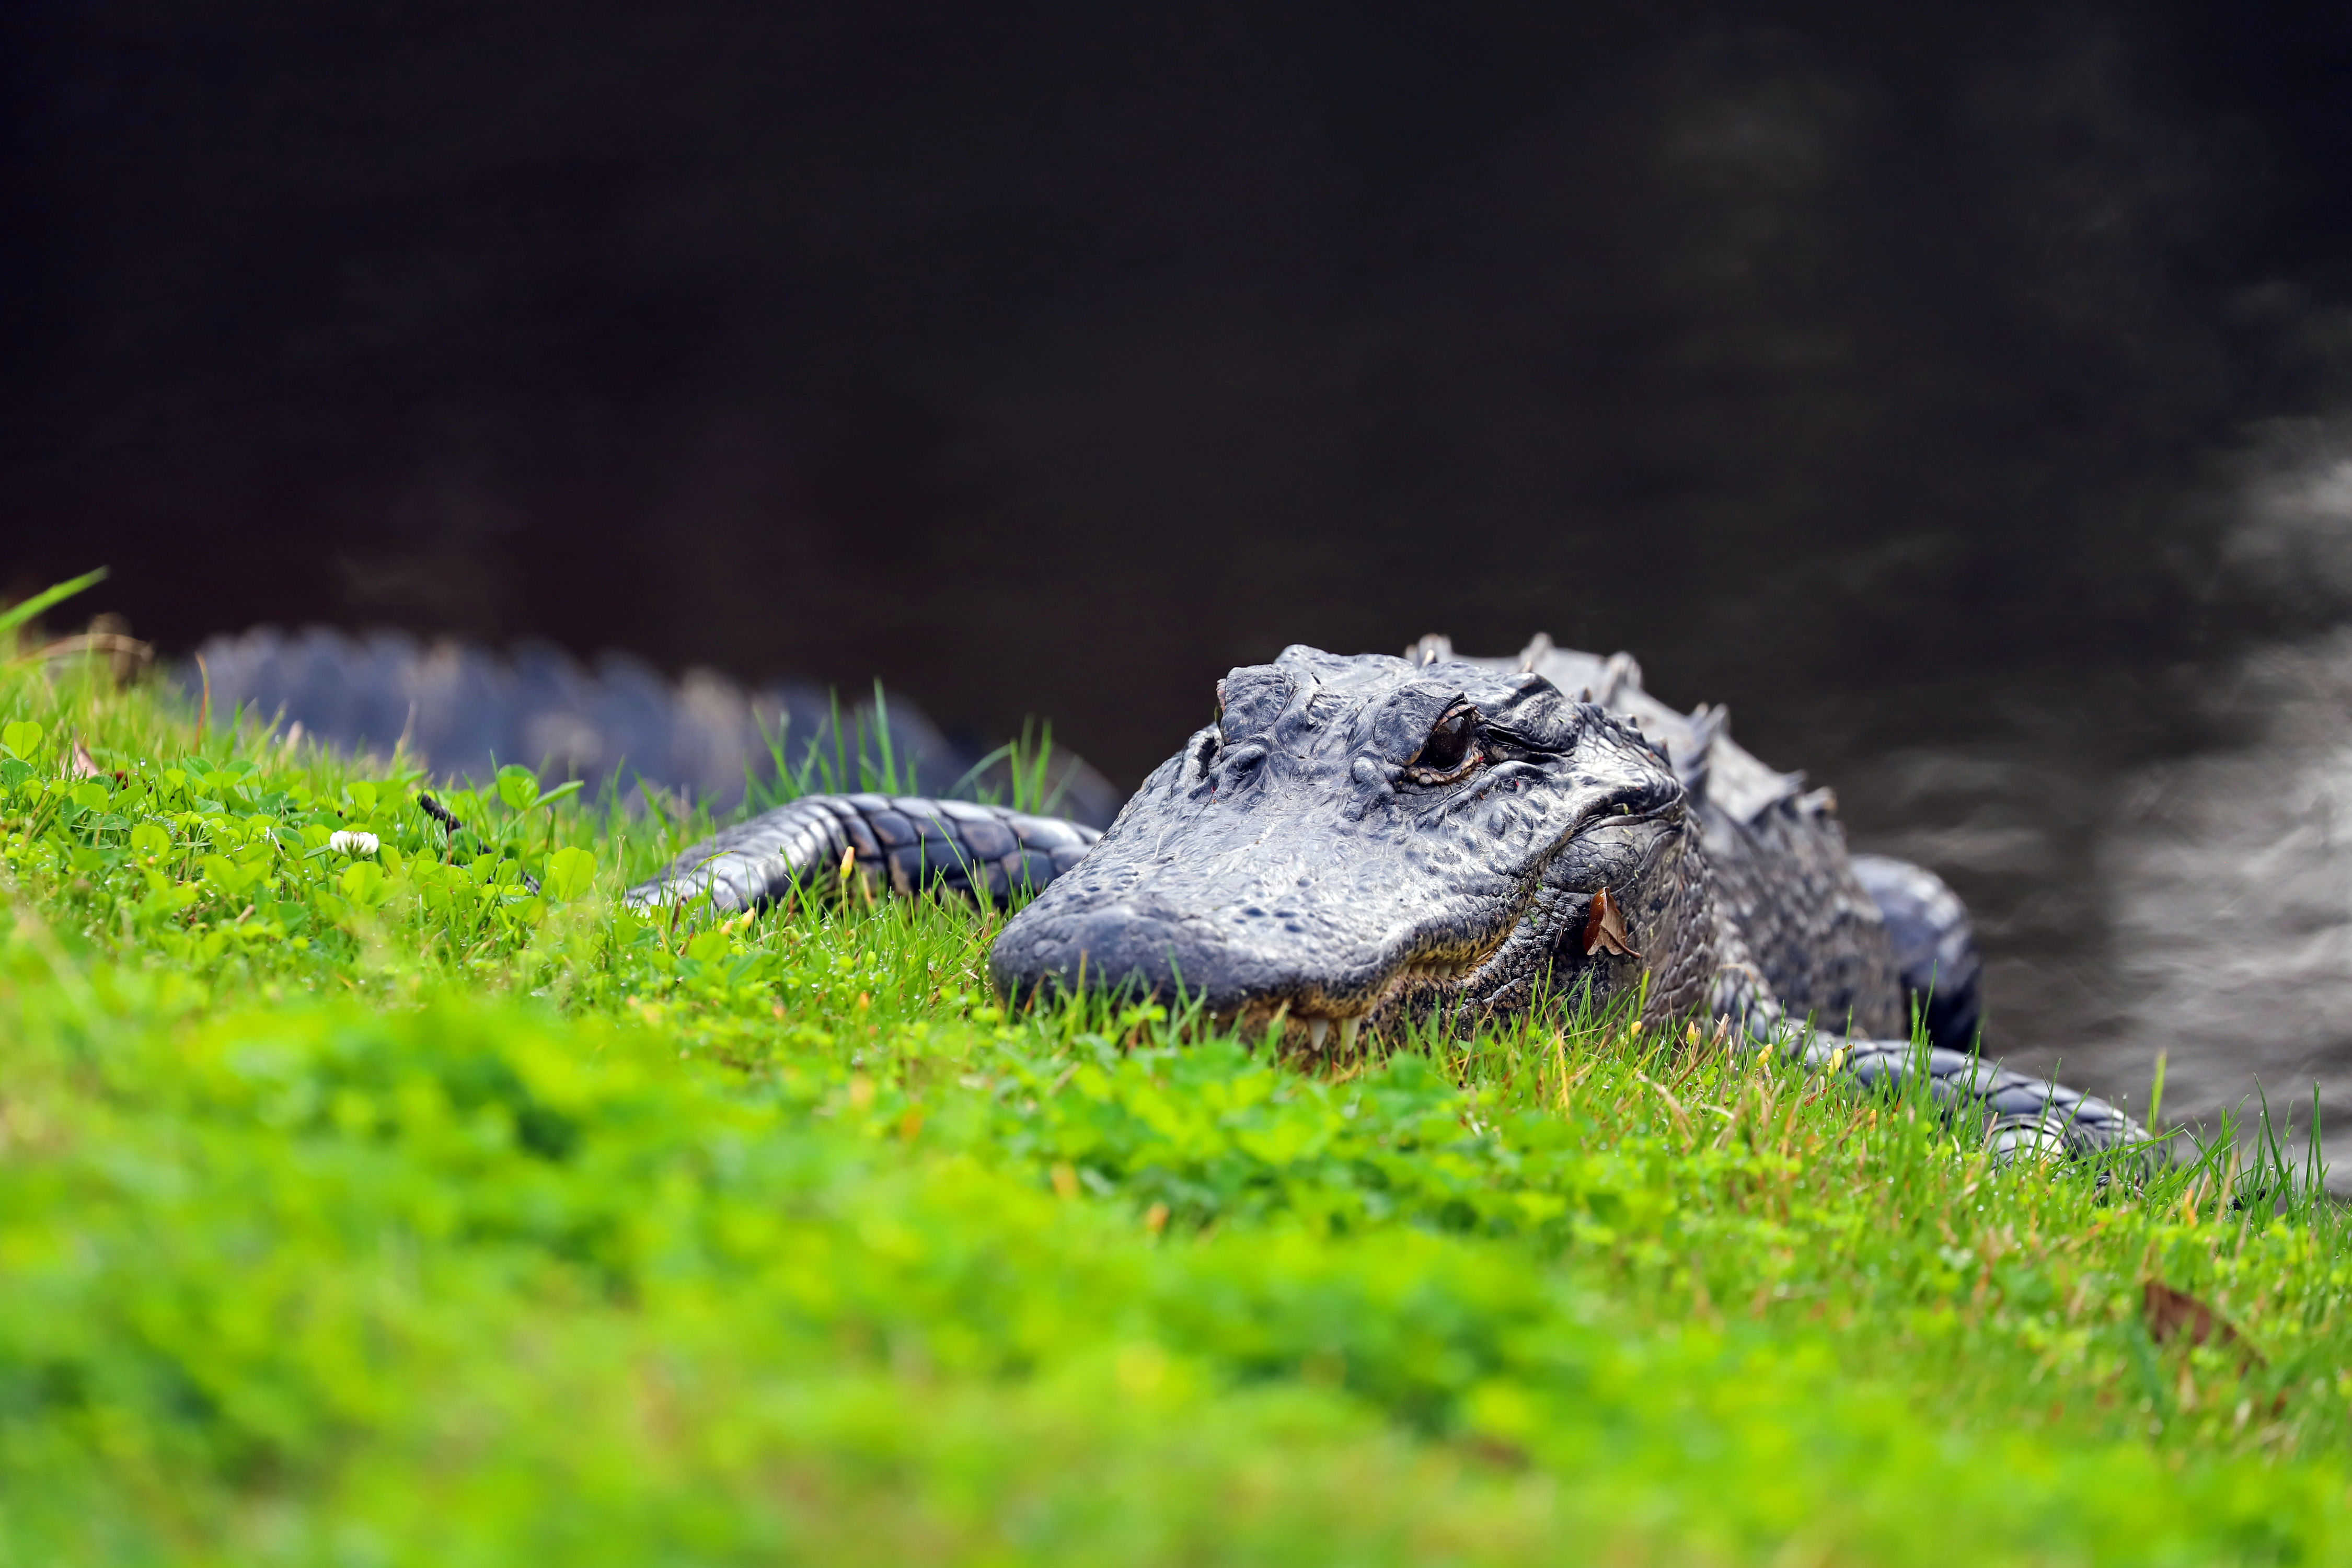 From Scaling Fences to Swimming Through Intersections, Florida Alligators Had Quite the Week